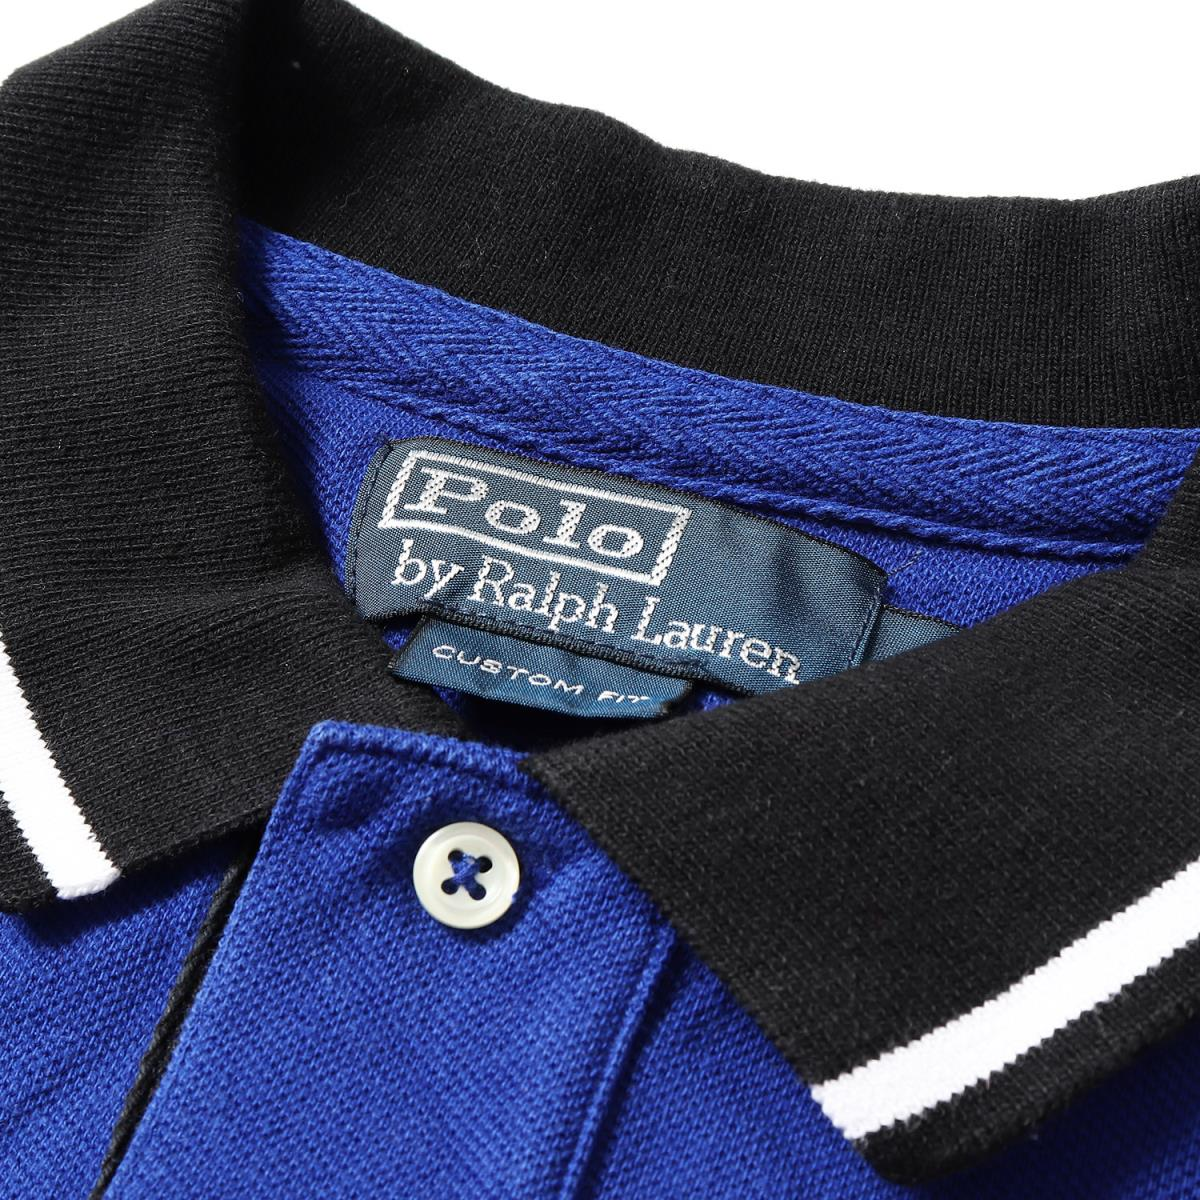 POLO by Ralph Lauren (polo by Ralph Lauren) Italy design BIC pony embroidery fawn cotton short sleeves polo shirt (CUSTOM FIT) blue L